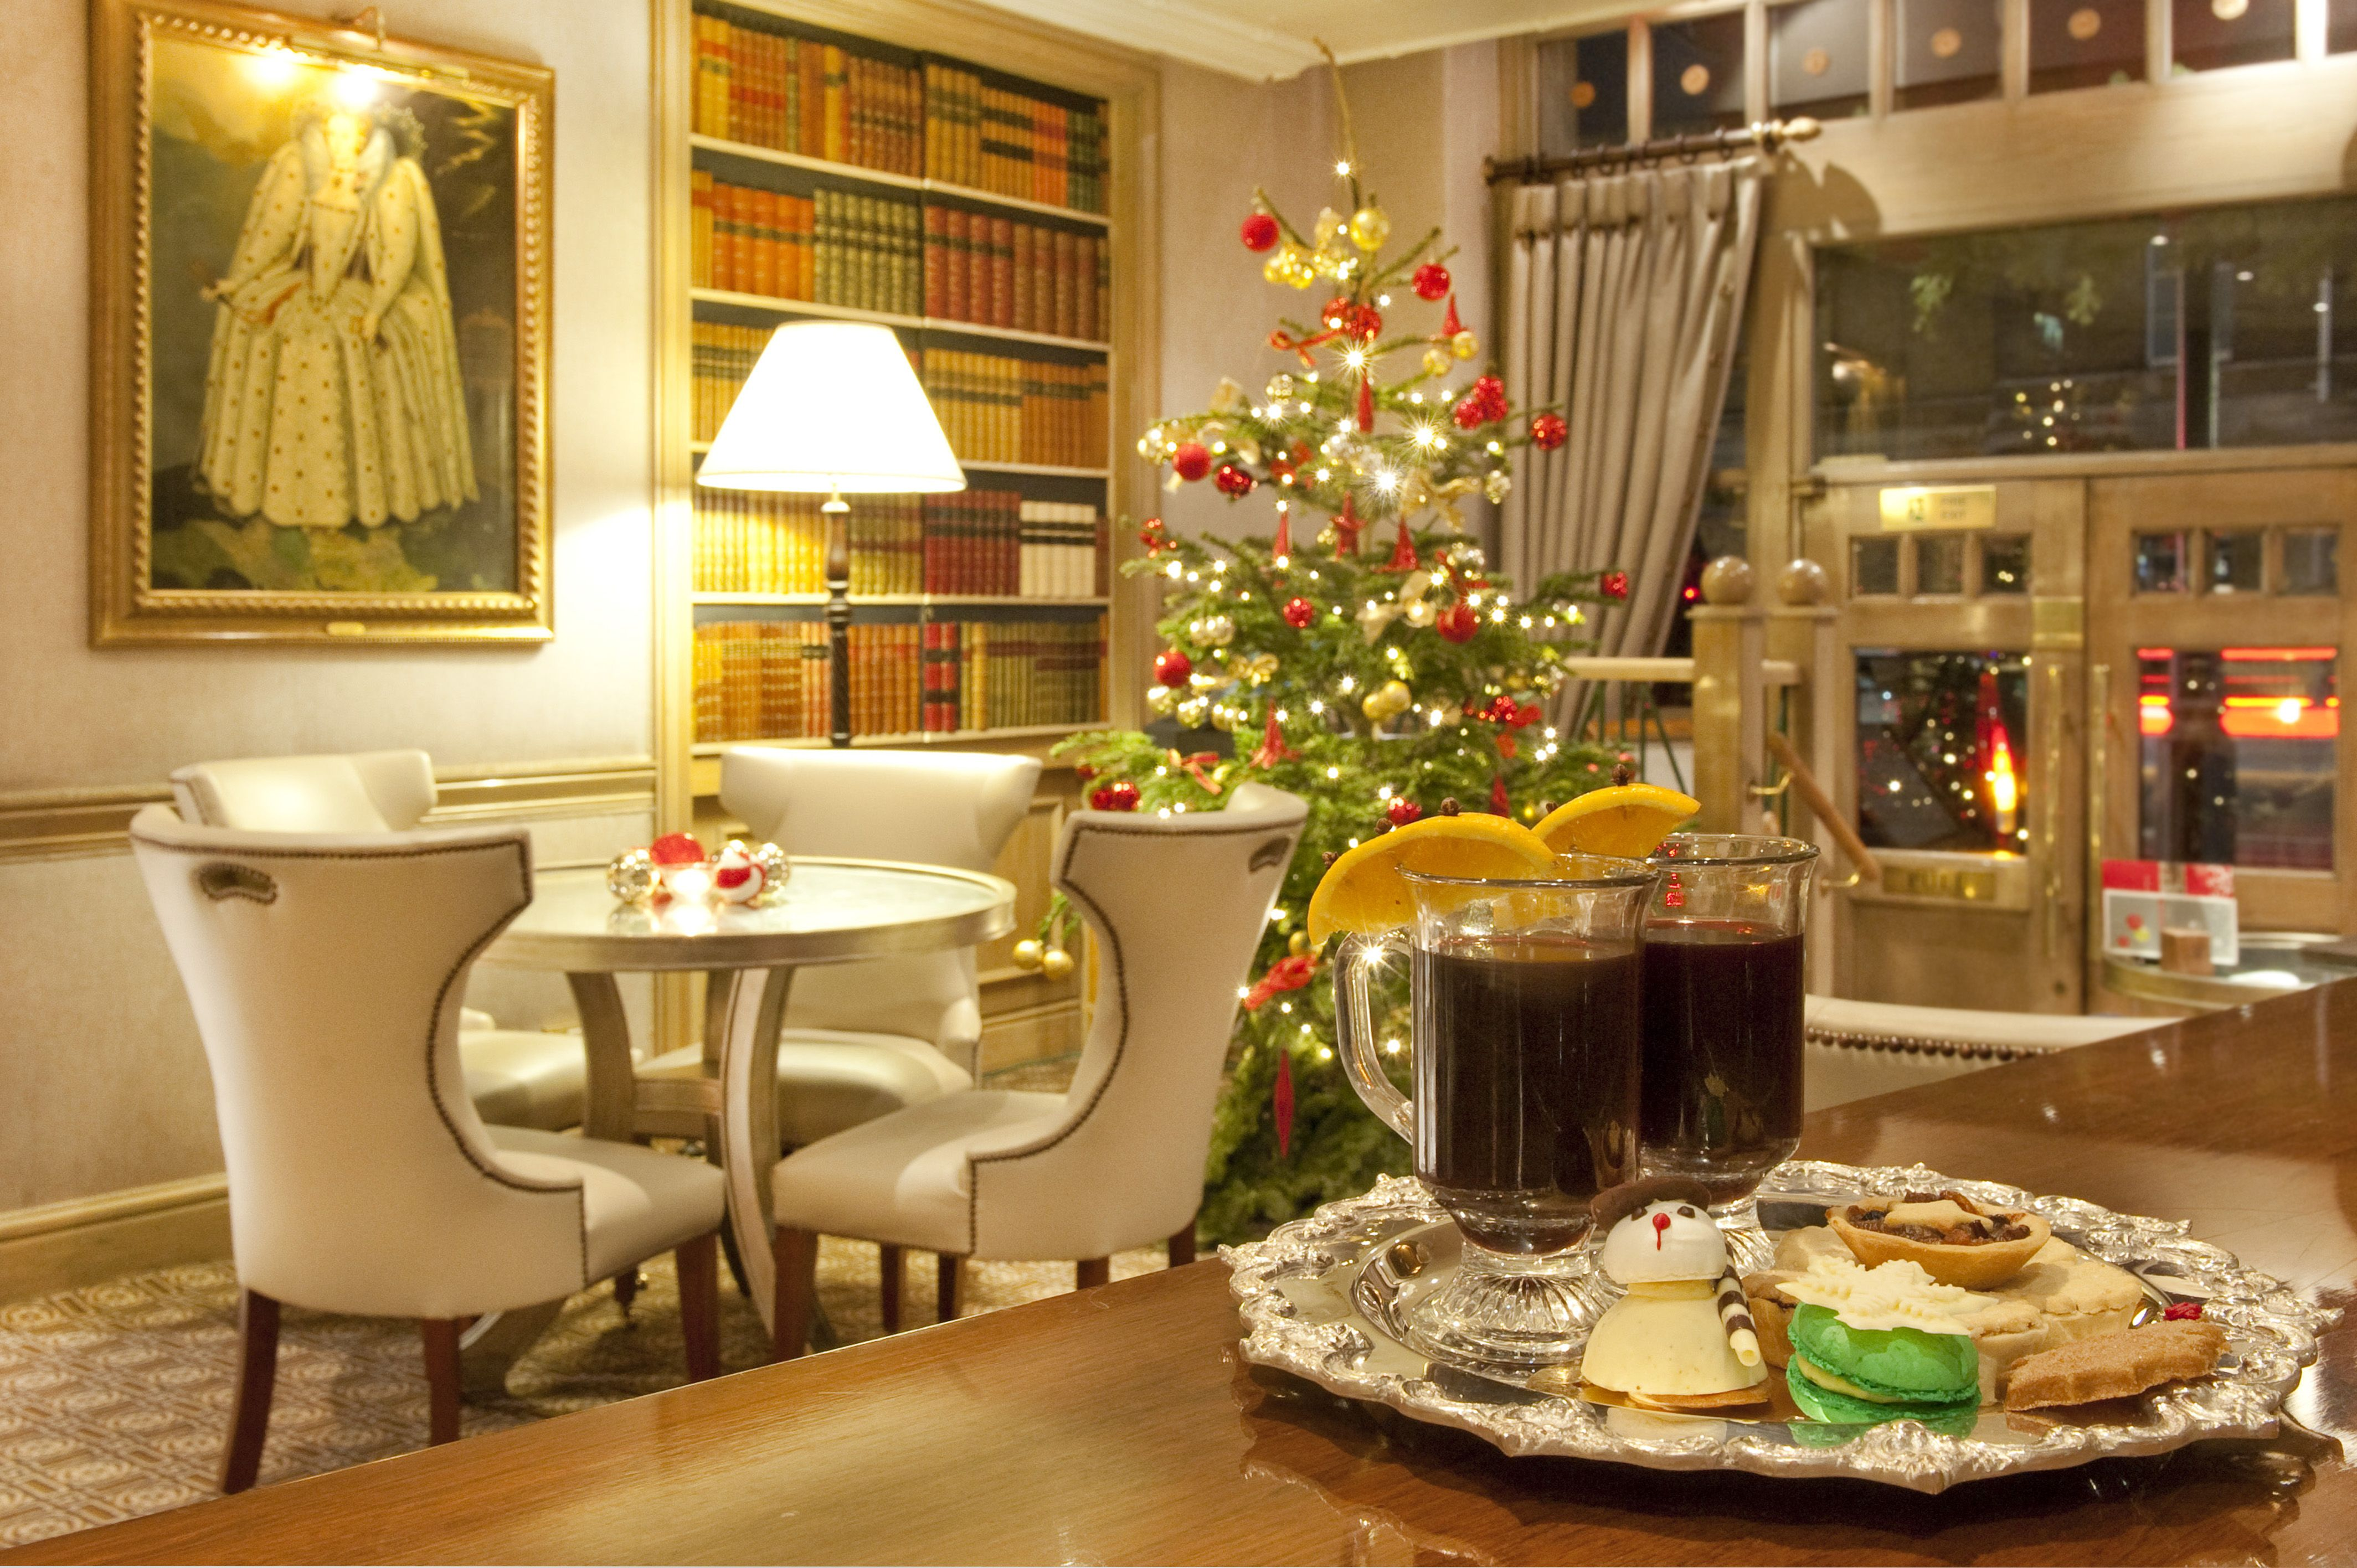 A Festive Afternoon Tea At The Rubens At The Palace,